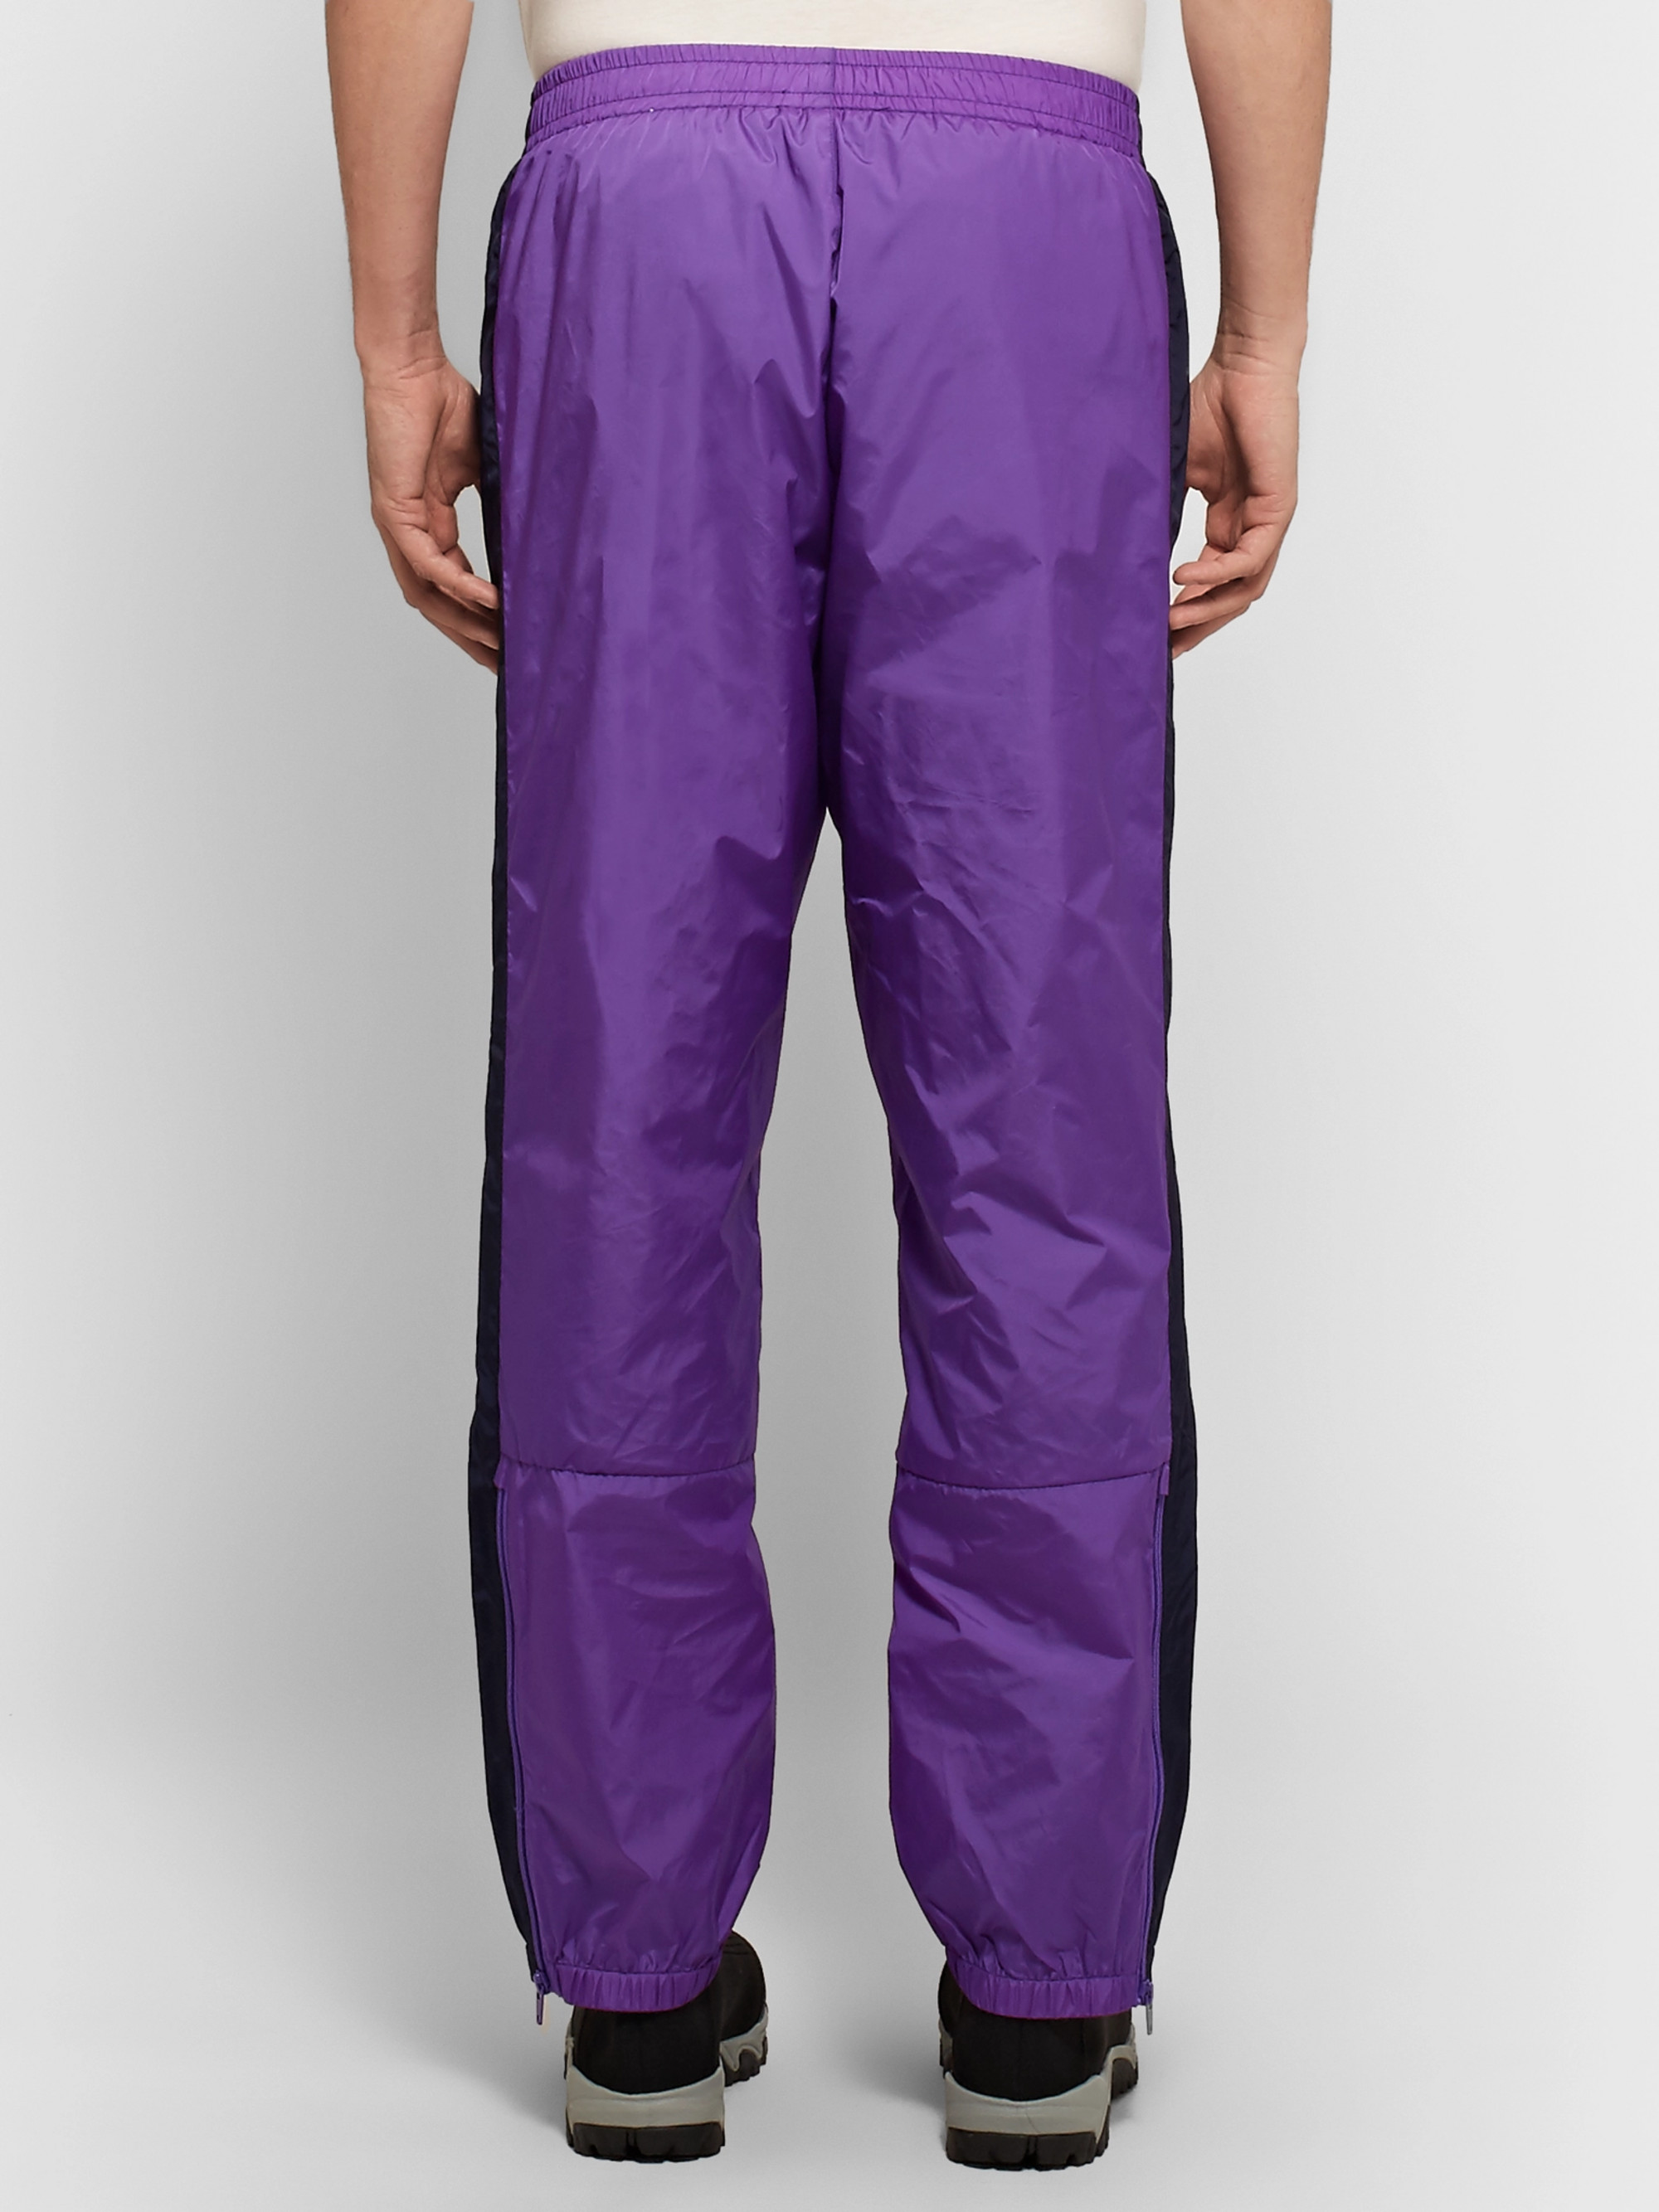 Acne Studios Phoenix Tapered Striped Nylon Sweatpants